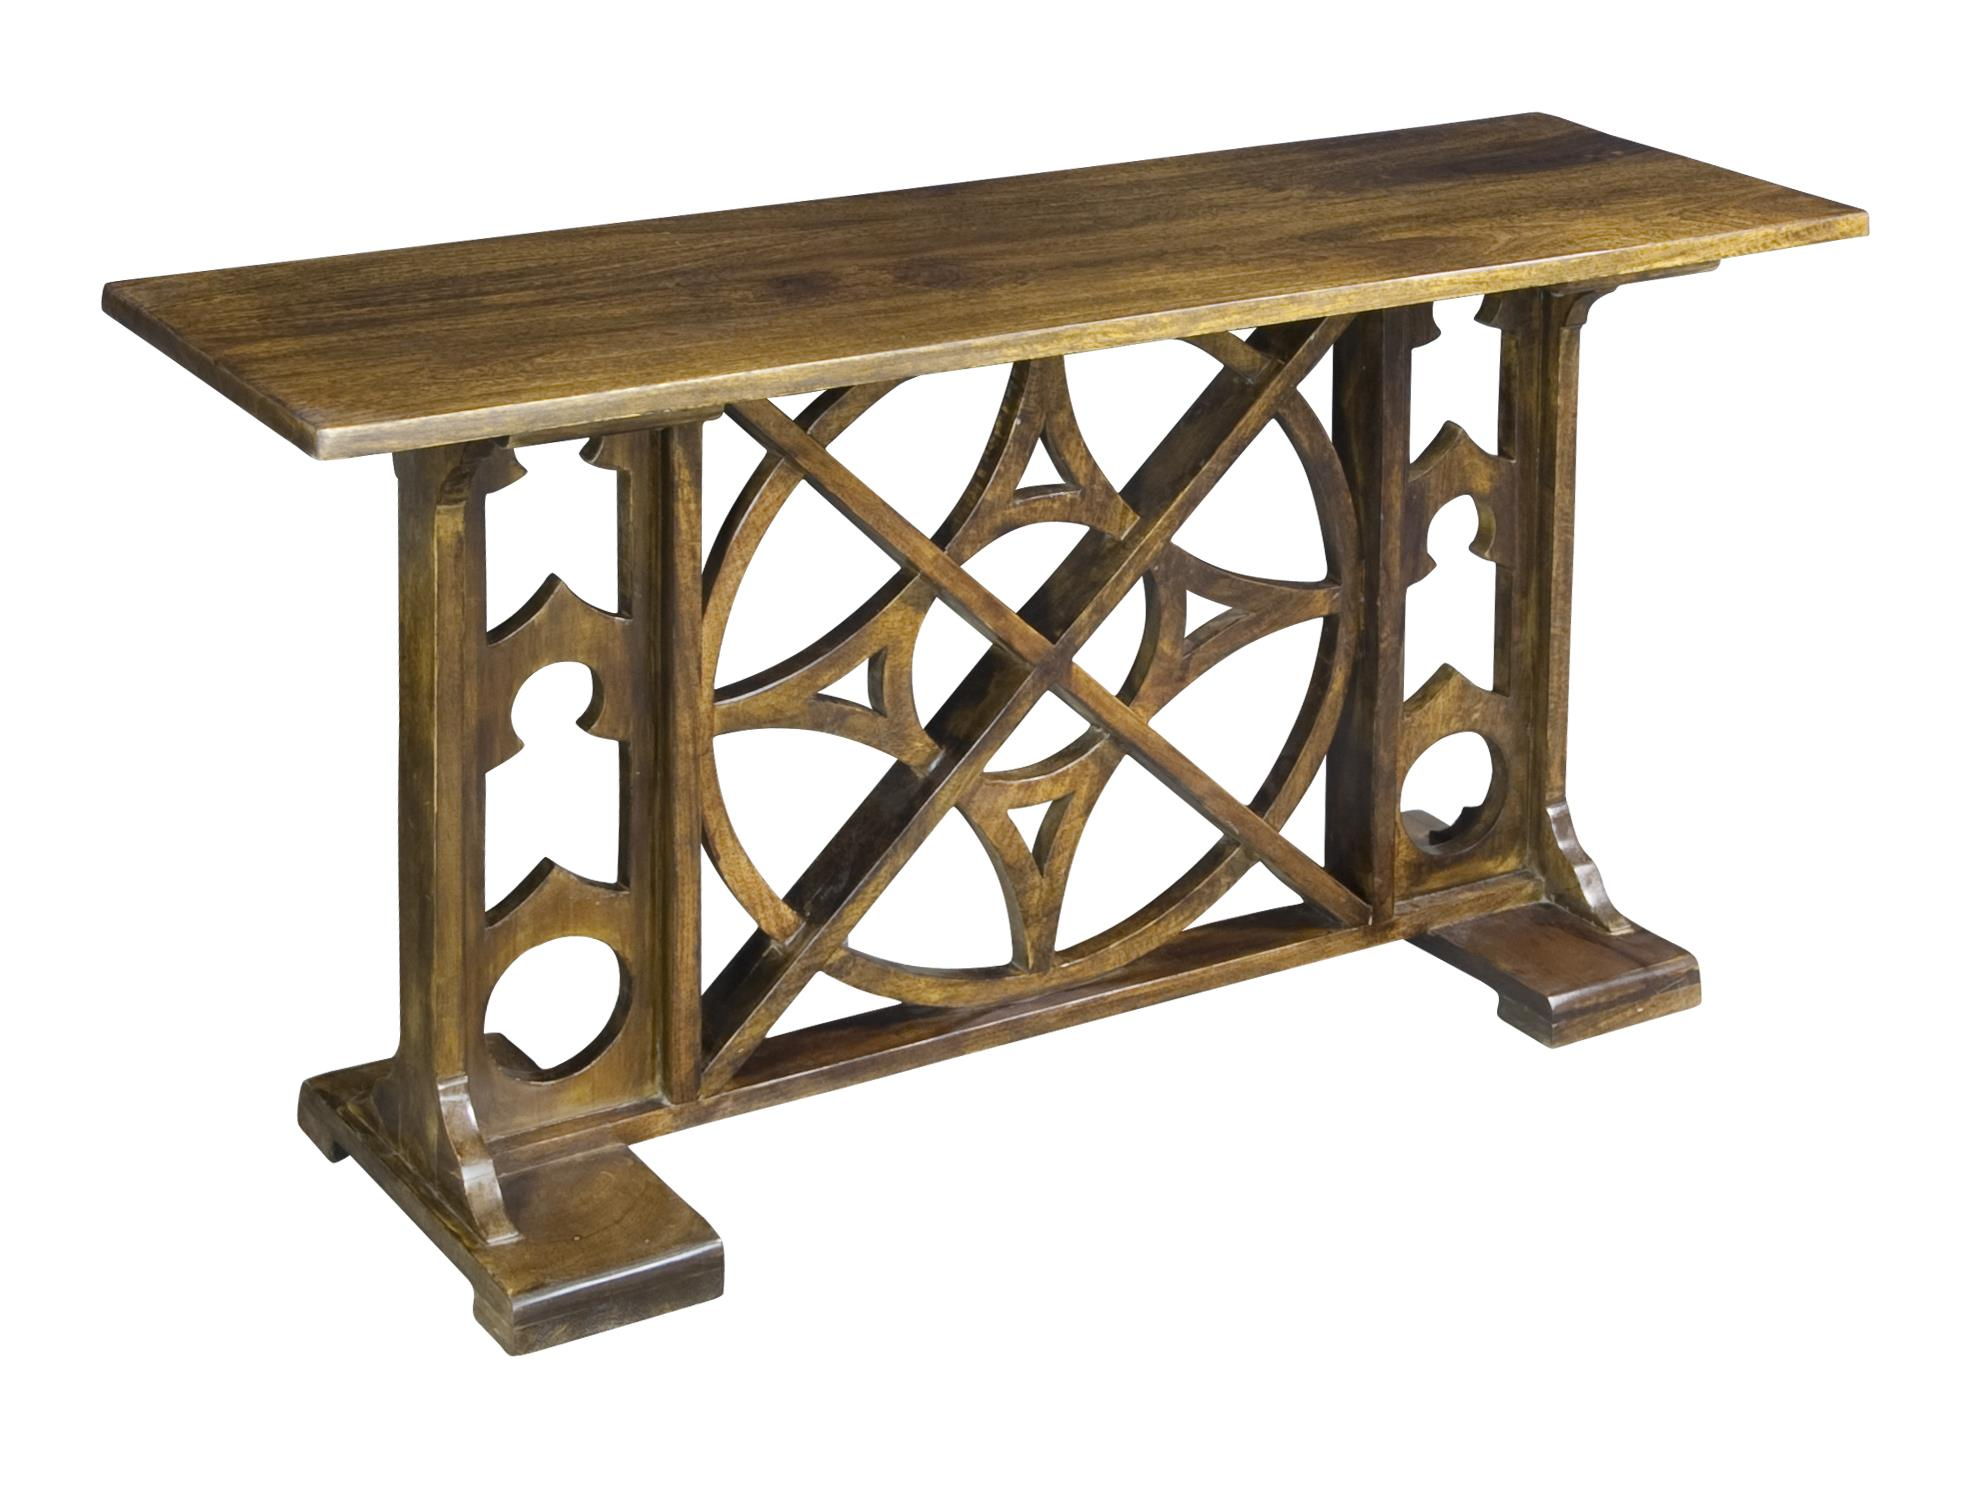 Morris Home Furnishings Accents Prague Console Table - Item Number: 75323